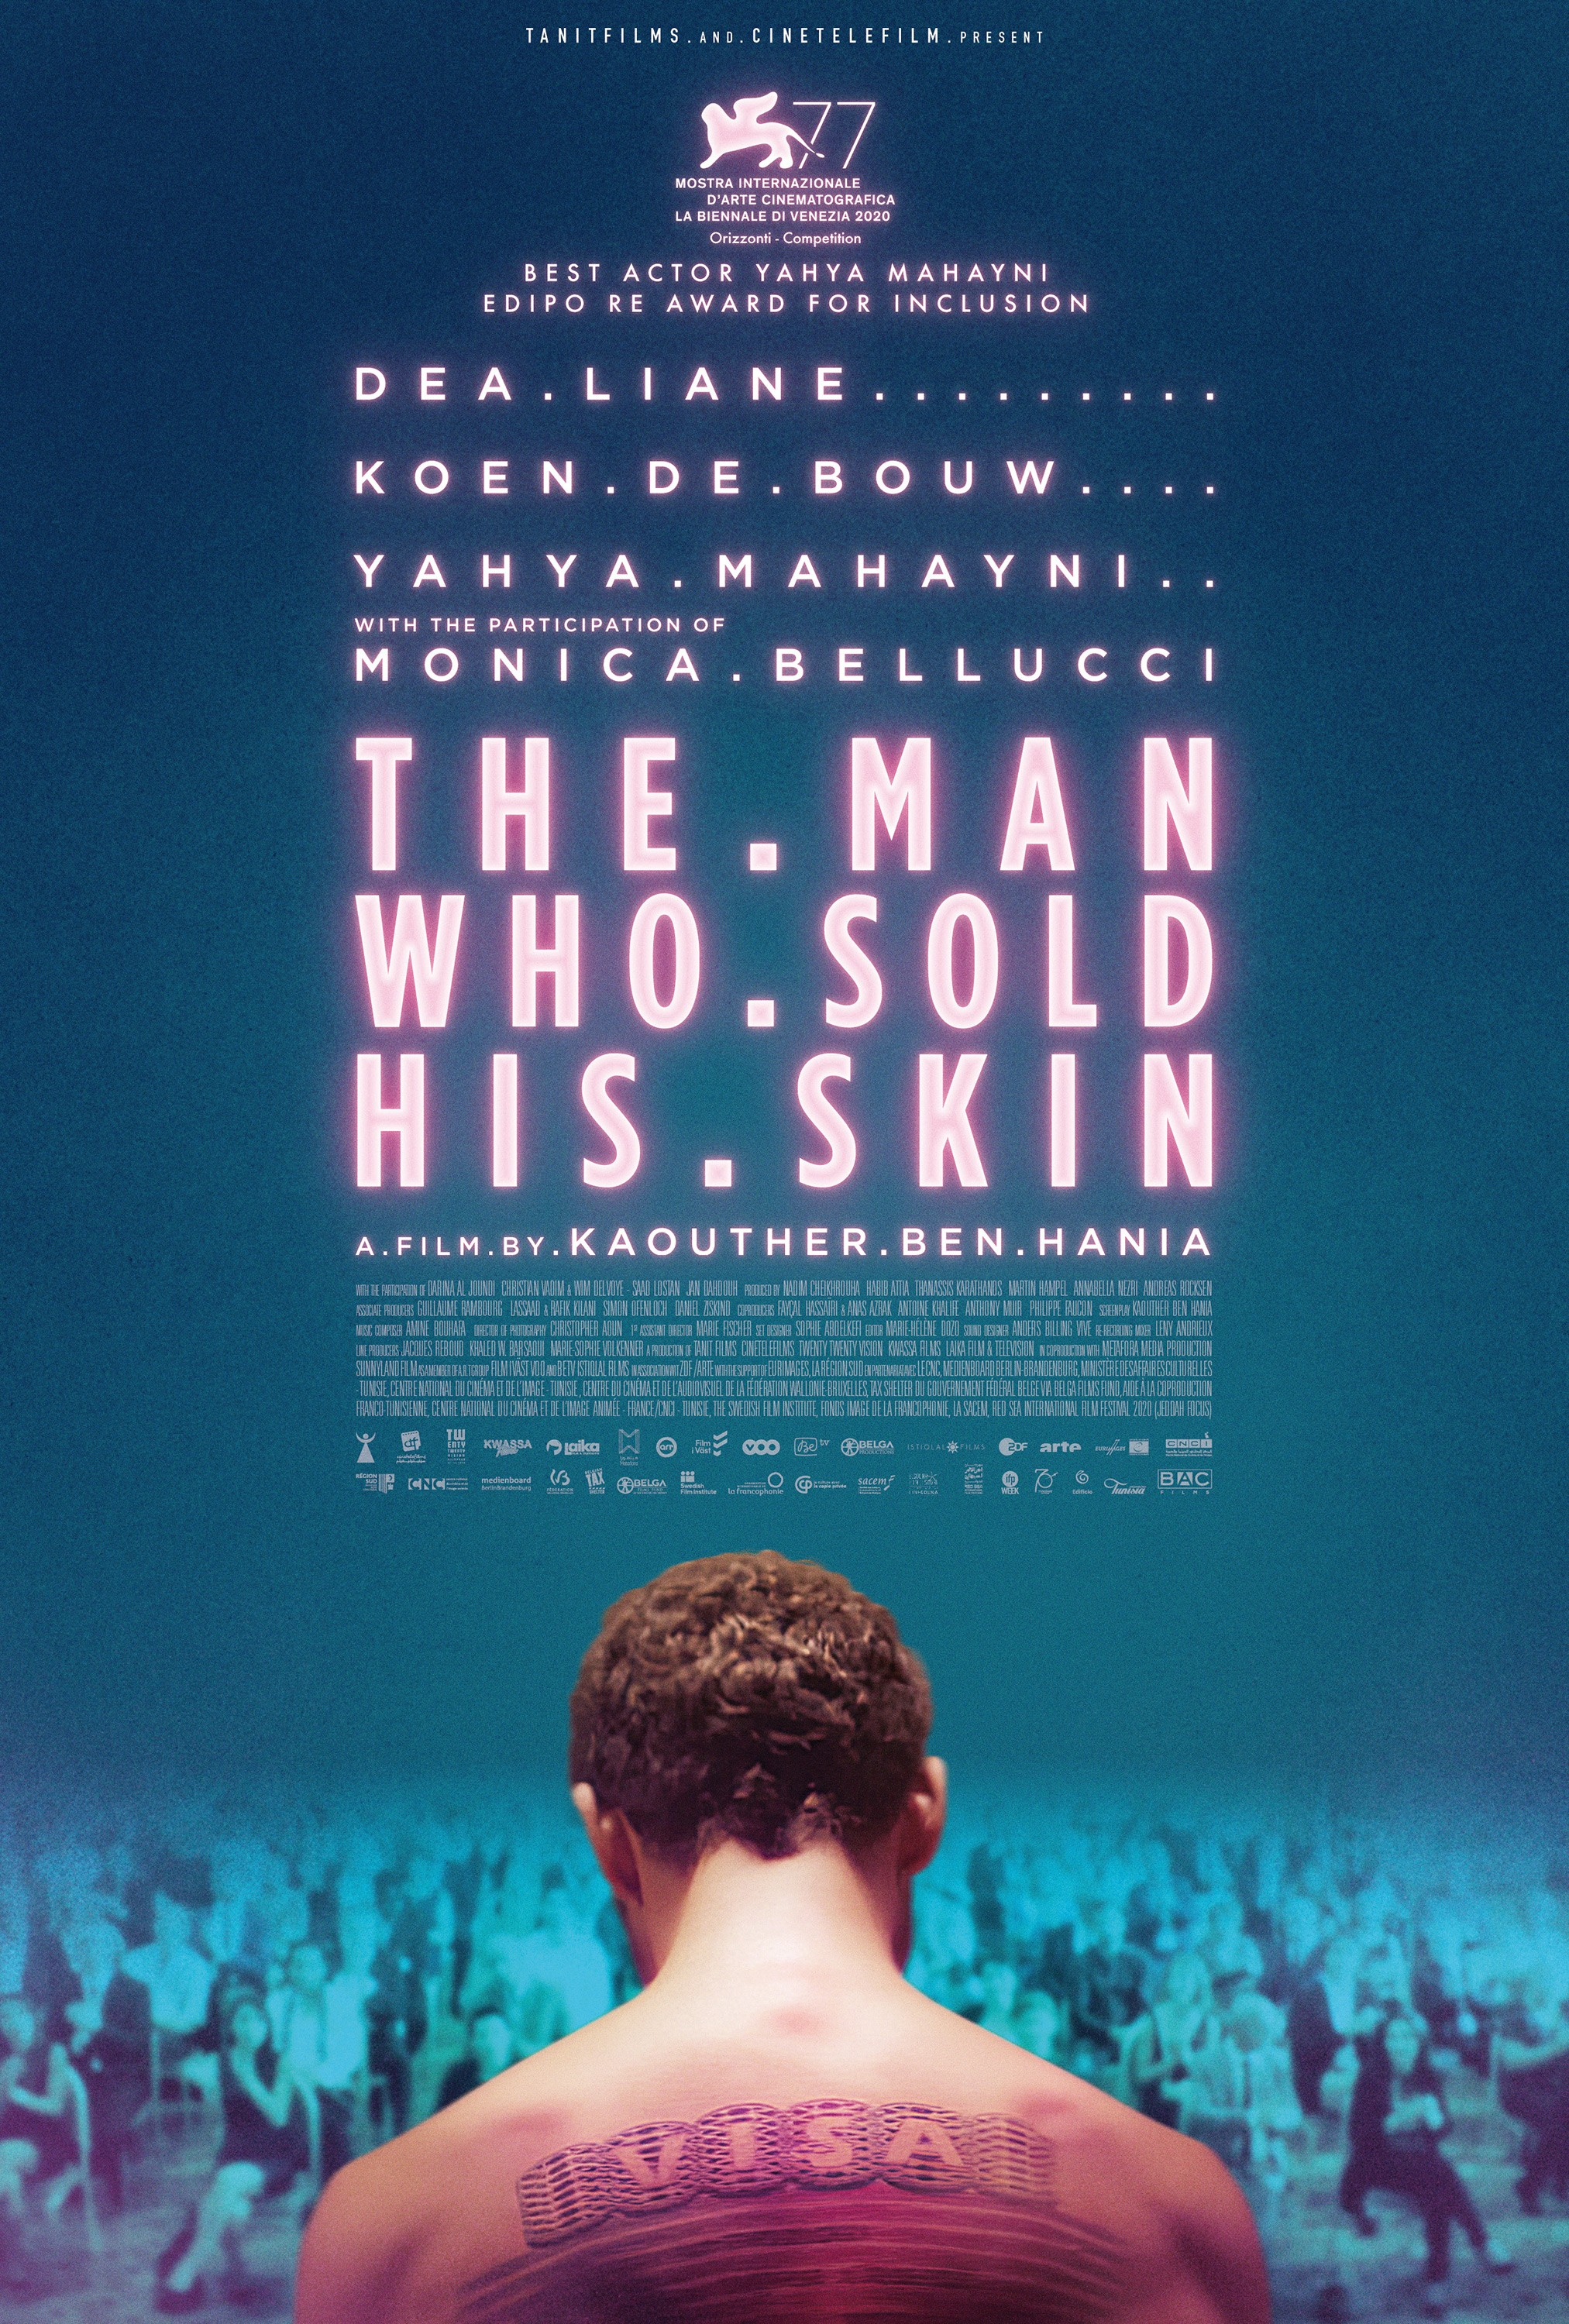 The Man Who Sold His Skin (2020) Full Movie [In English] With Hindi Subtitles | WebRip 720p [1XBET]